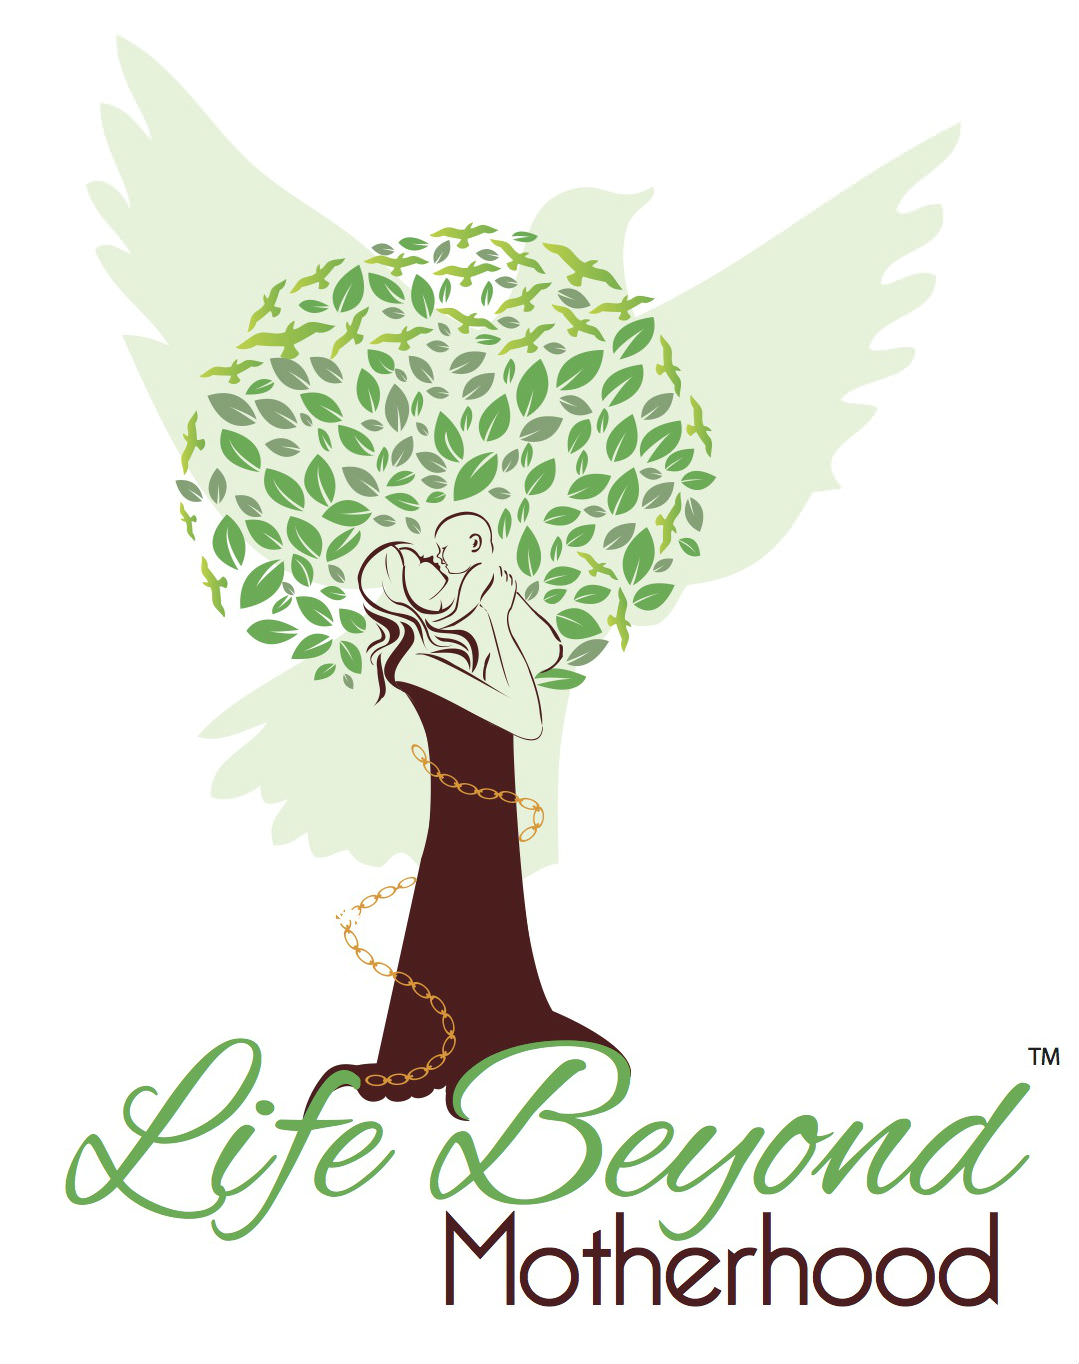 lifebeyond